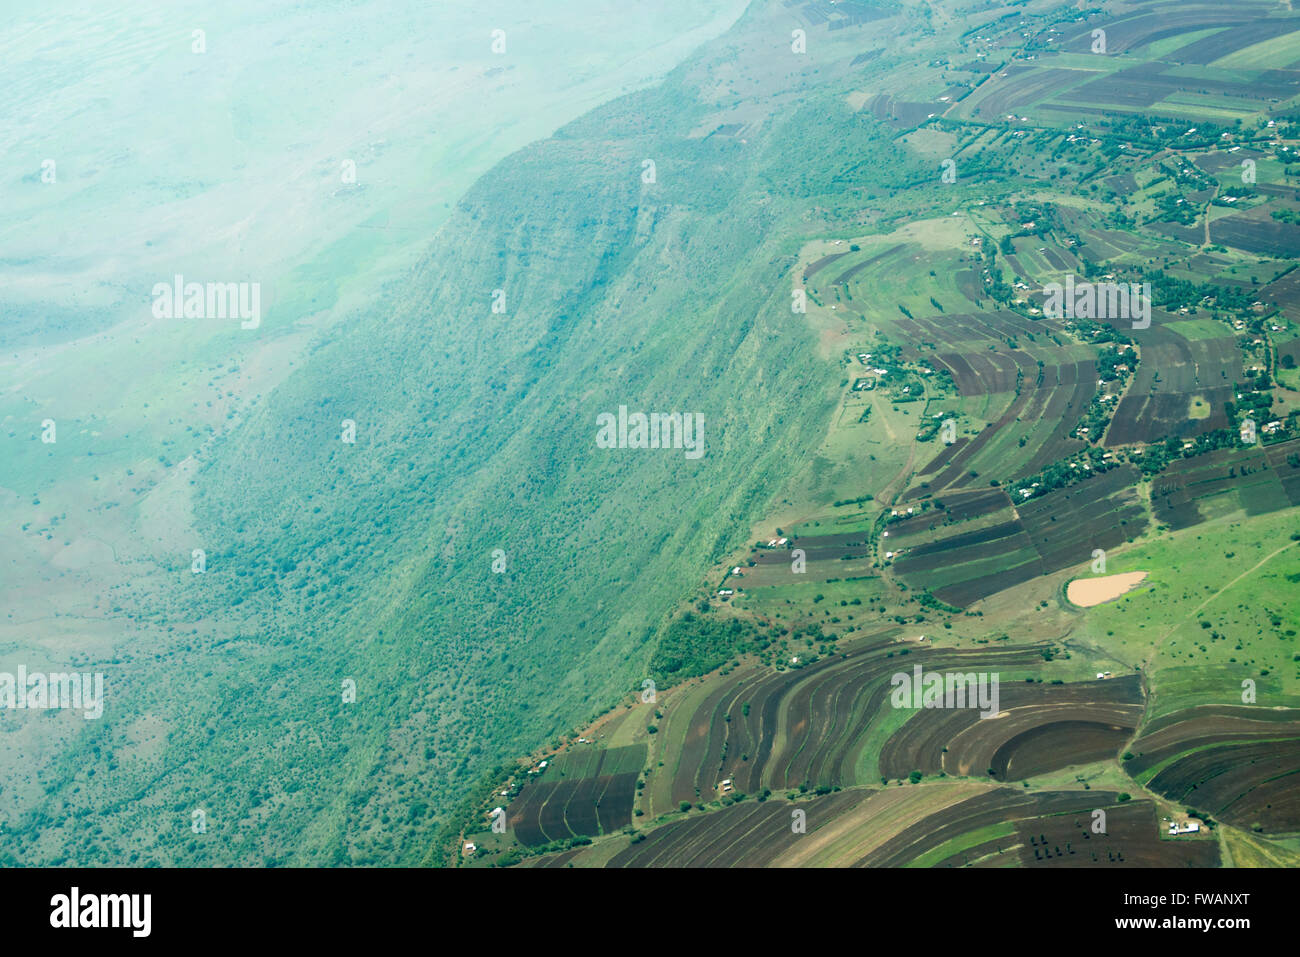 Aerial view of the eastern wall of the Great Rift Valley in Tanzania, photographed between Lake Manyara and Karatu. Stock Photo